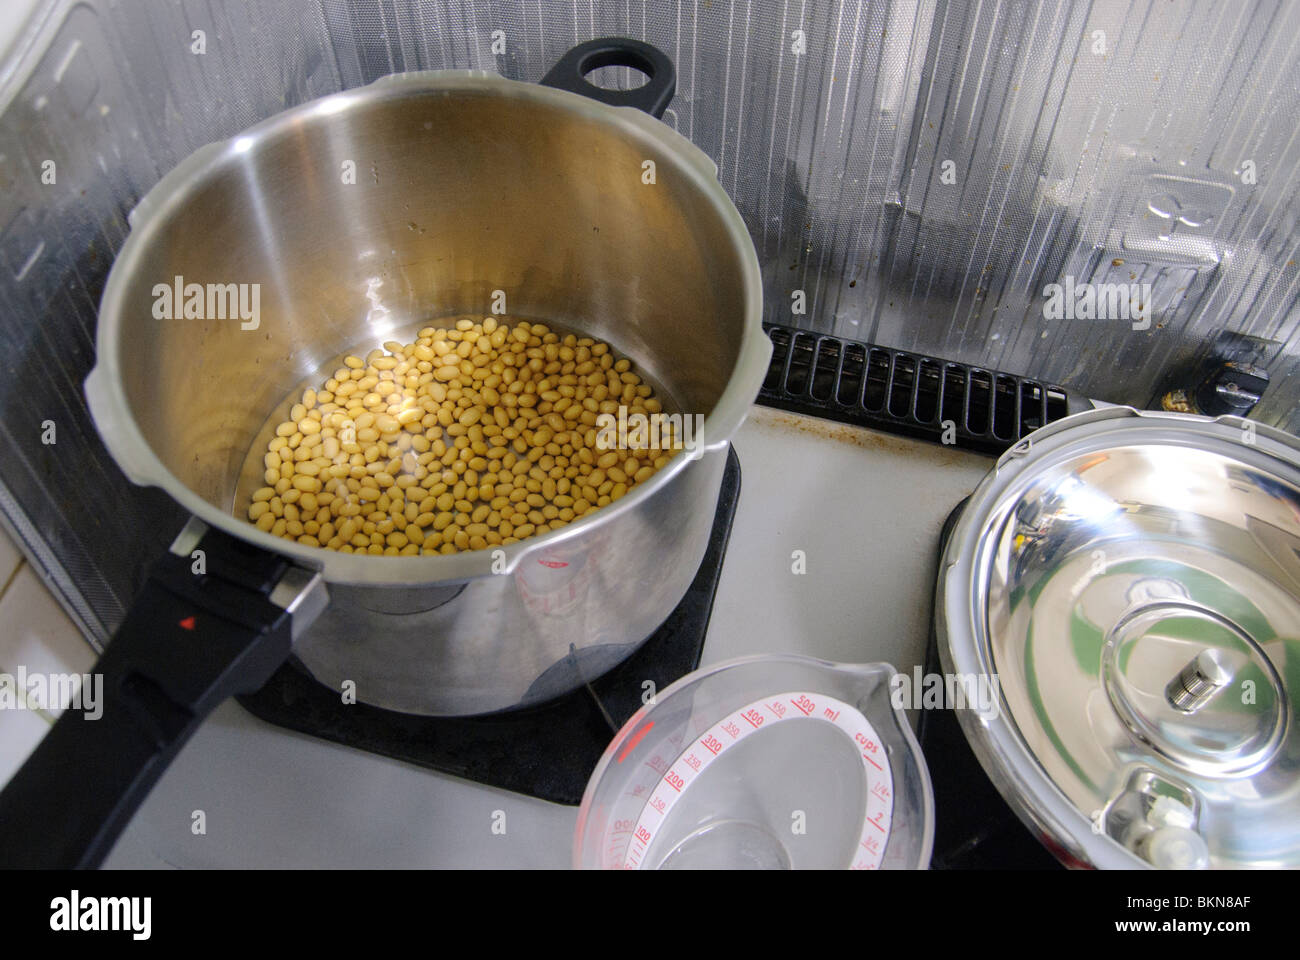 Soy beans ready for steaming in a pressure cooker, Tokyo, Japan, April 27, 2010. - Stock Image